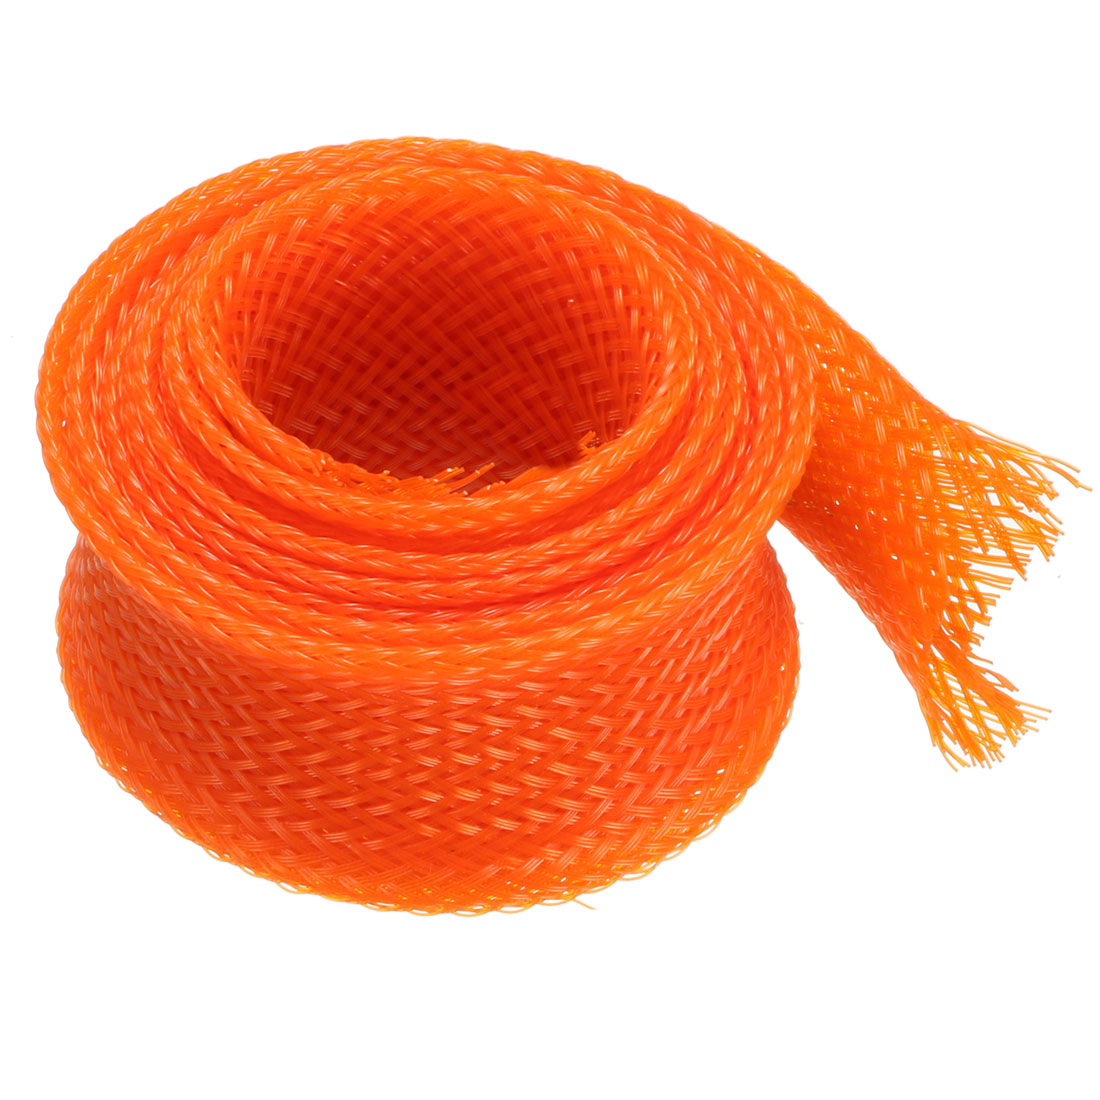 25mm Dia Tight Braided PET Expandable Sleeving Cable Wrap Sheath Orange 1M Length